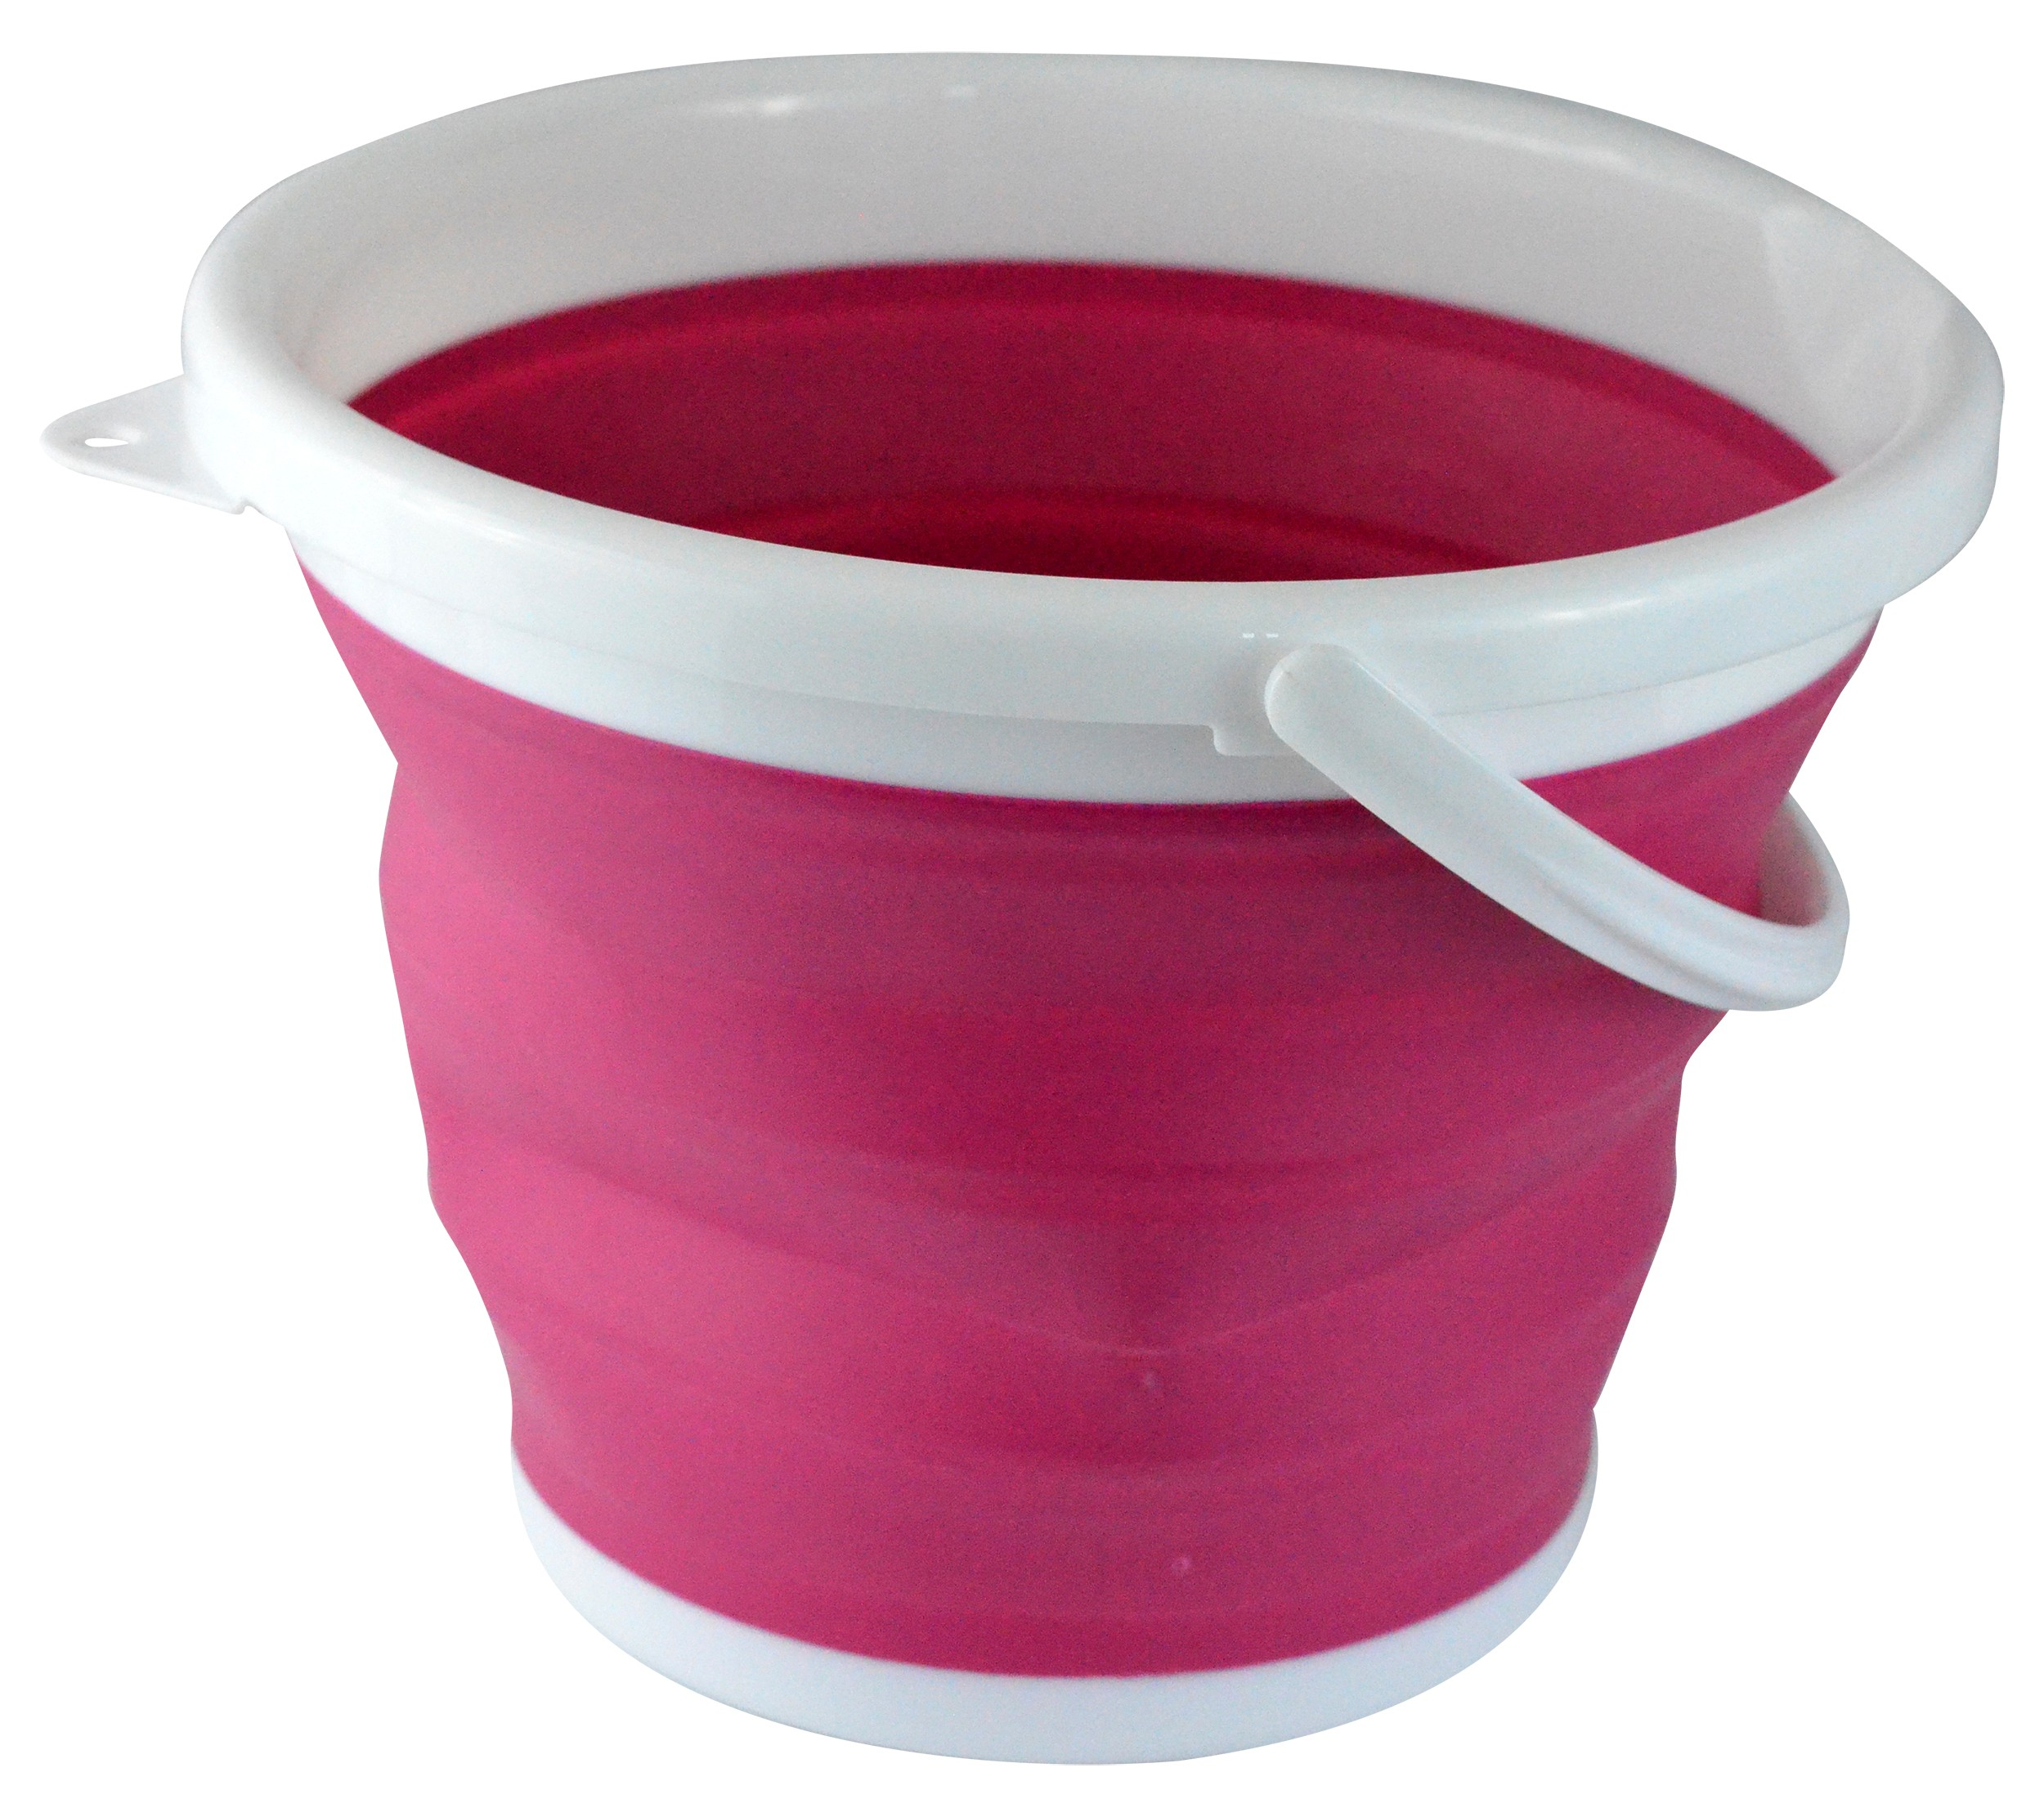 Foldable Silicone Collapsible 2.65 Gallon Bucket, Pink